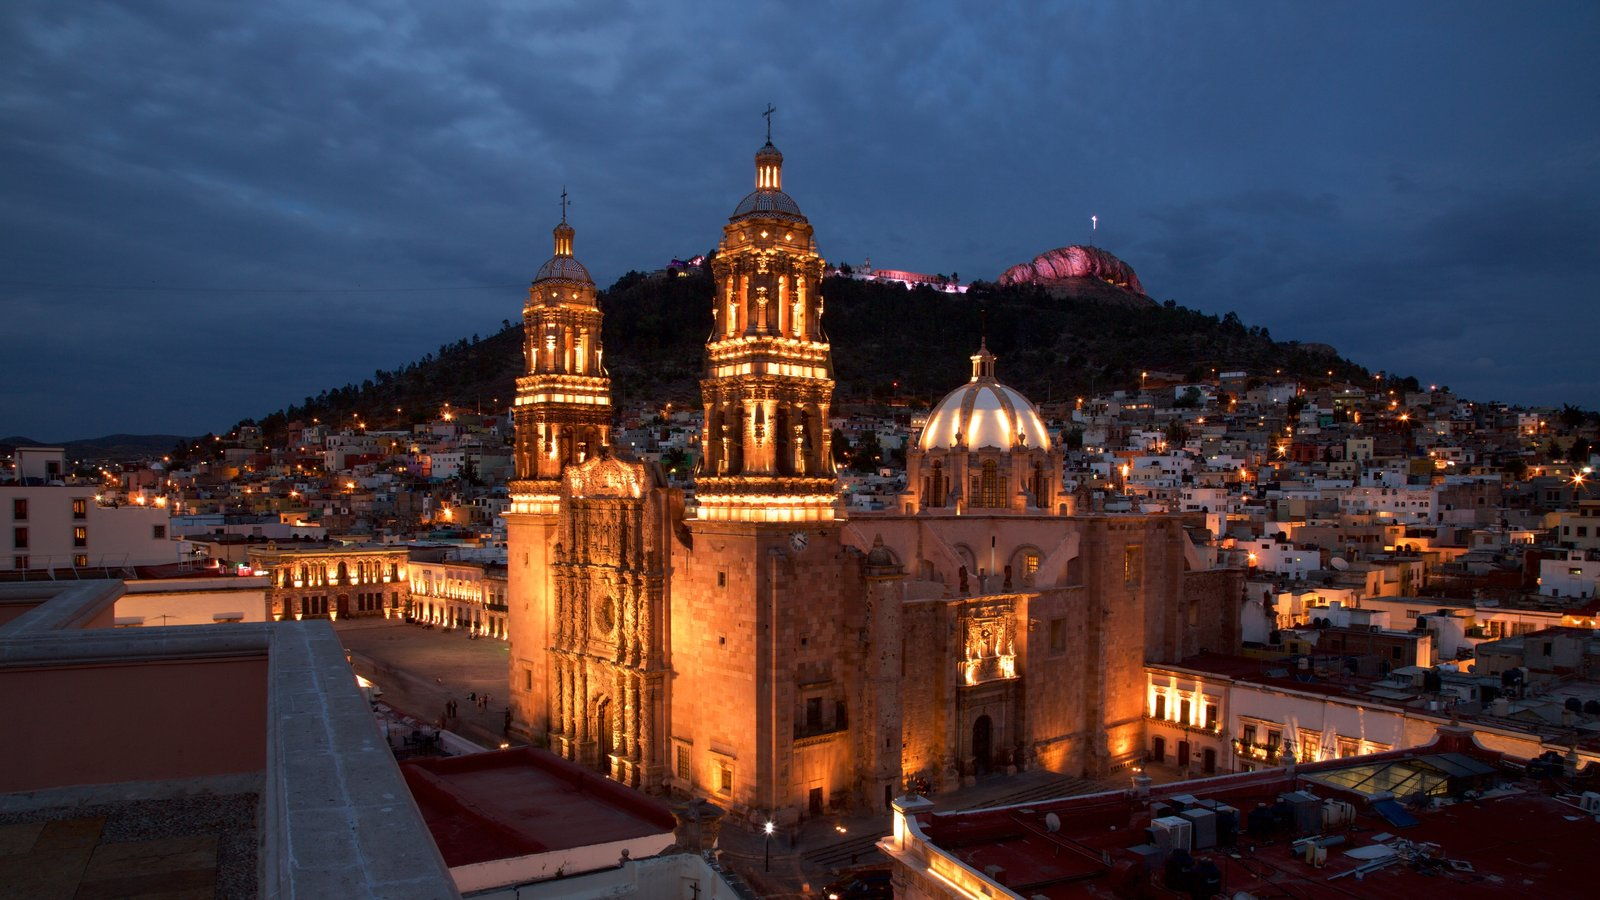 Zacatecas showing a city, landscape views and heritage architecture